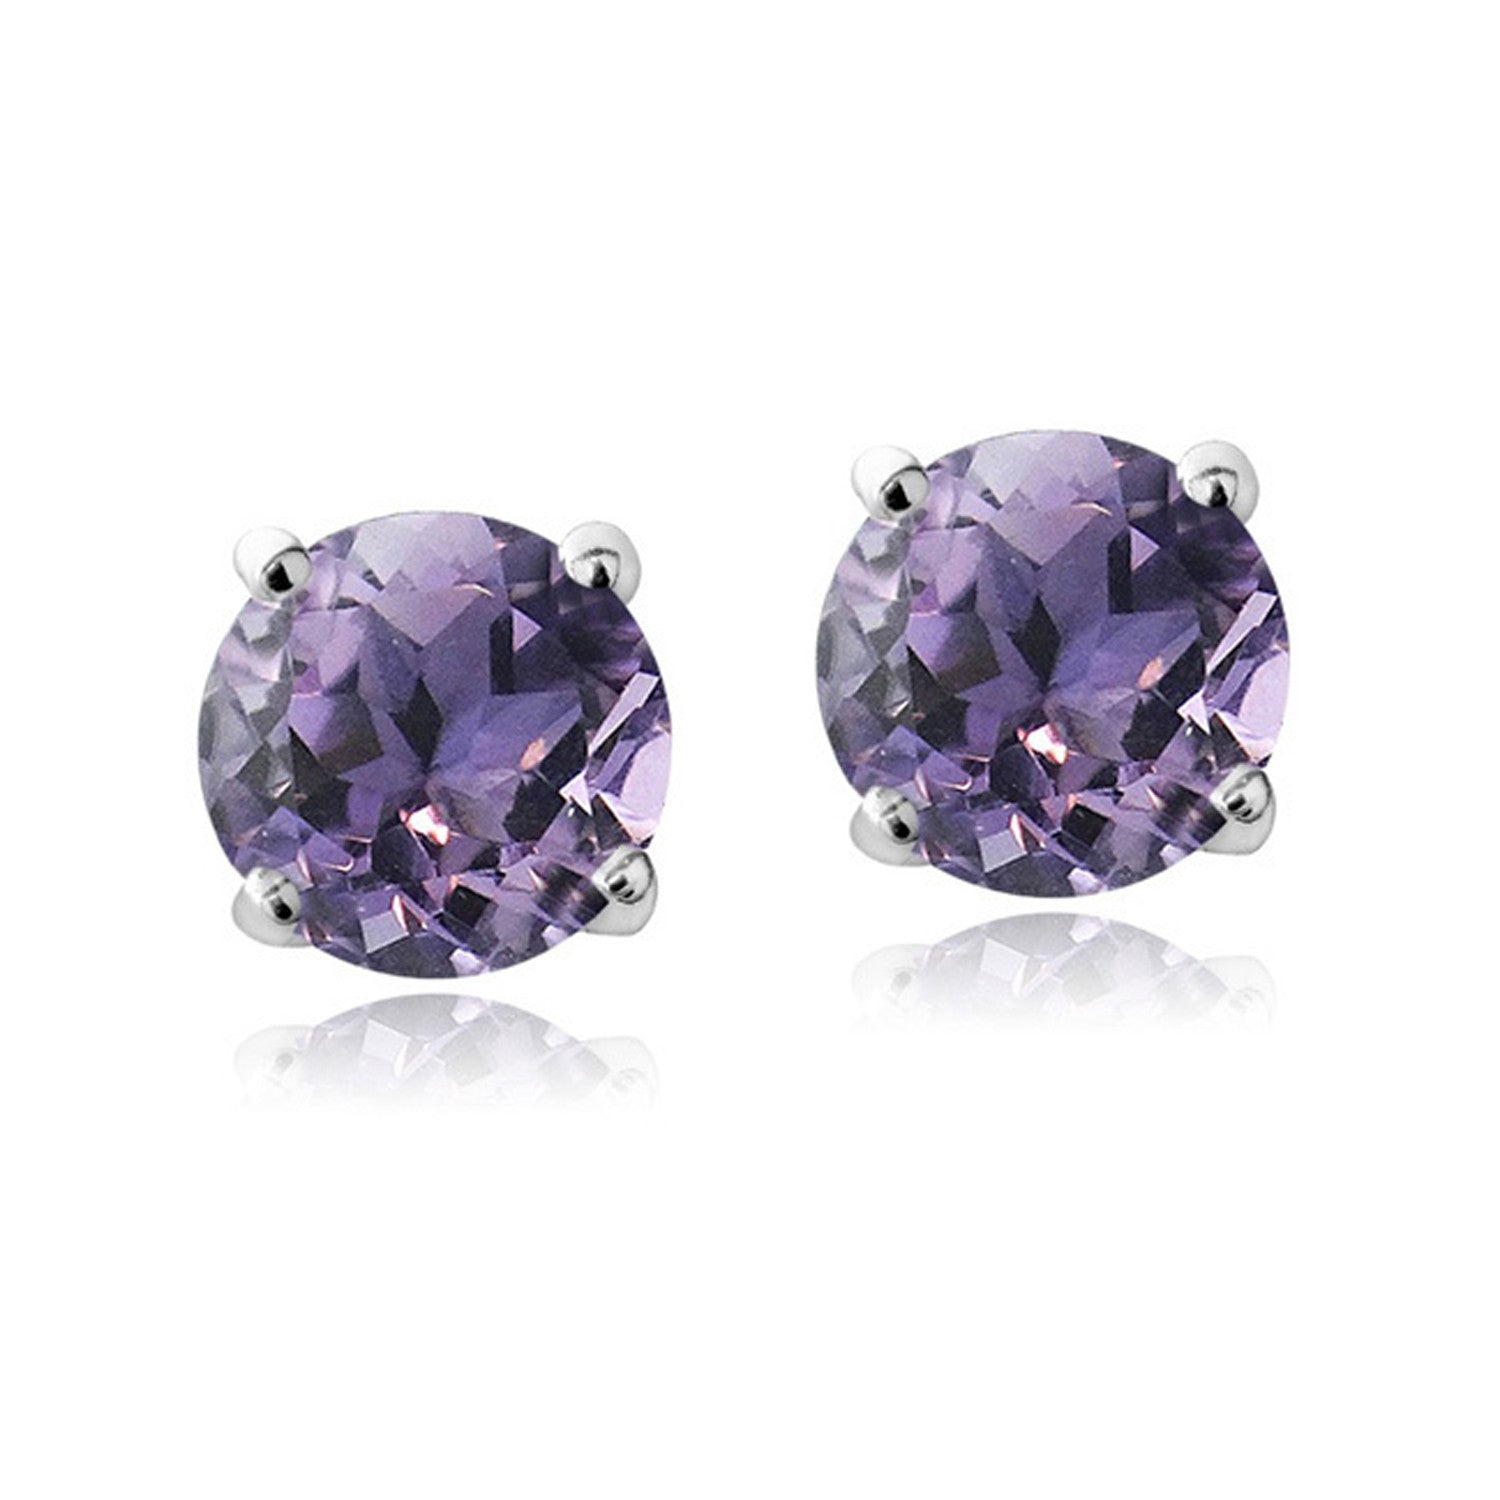 Swarovski Elements Sterling Silver Butterfly Clasp Birthstone Stud Earrings - February Amethyst